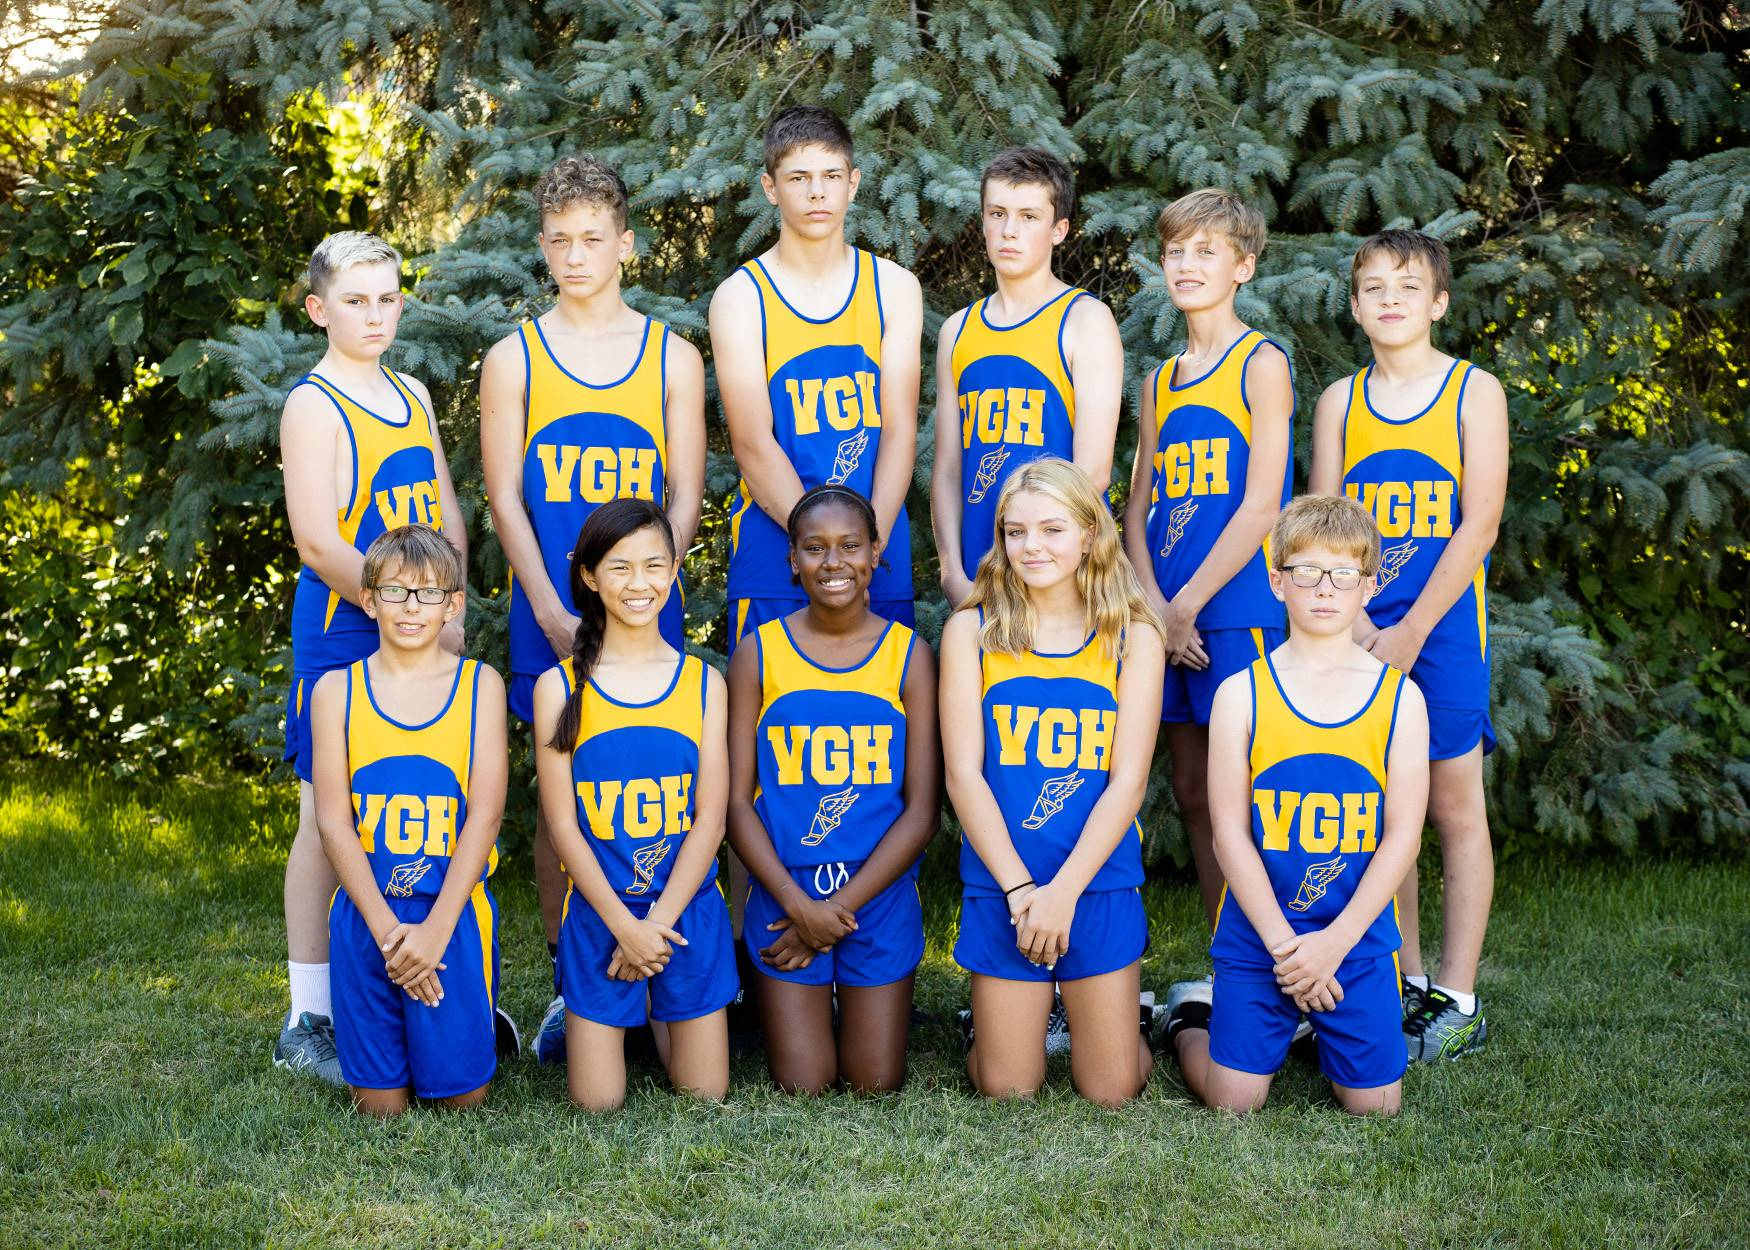 Group of 7th and 8th grade cross country runners lined up for team photo outside